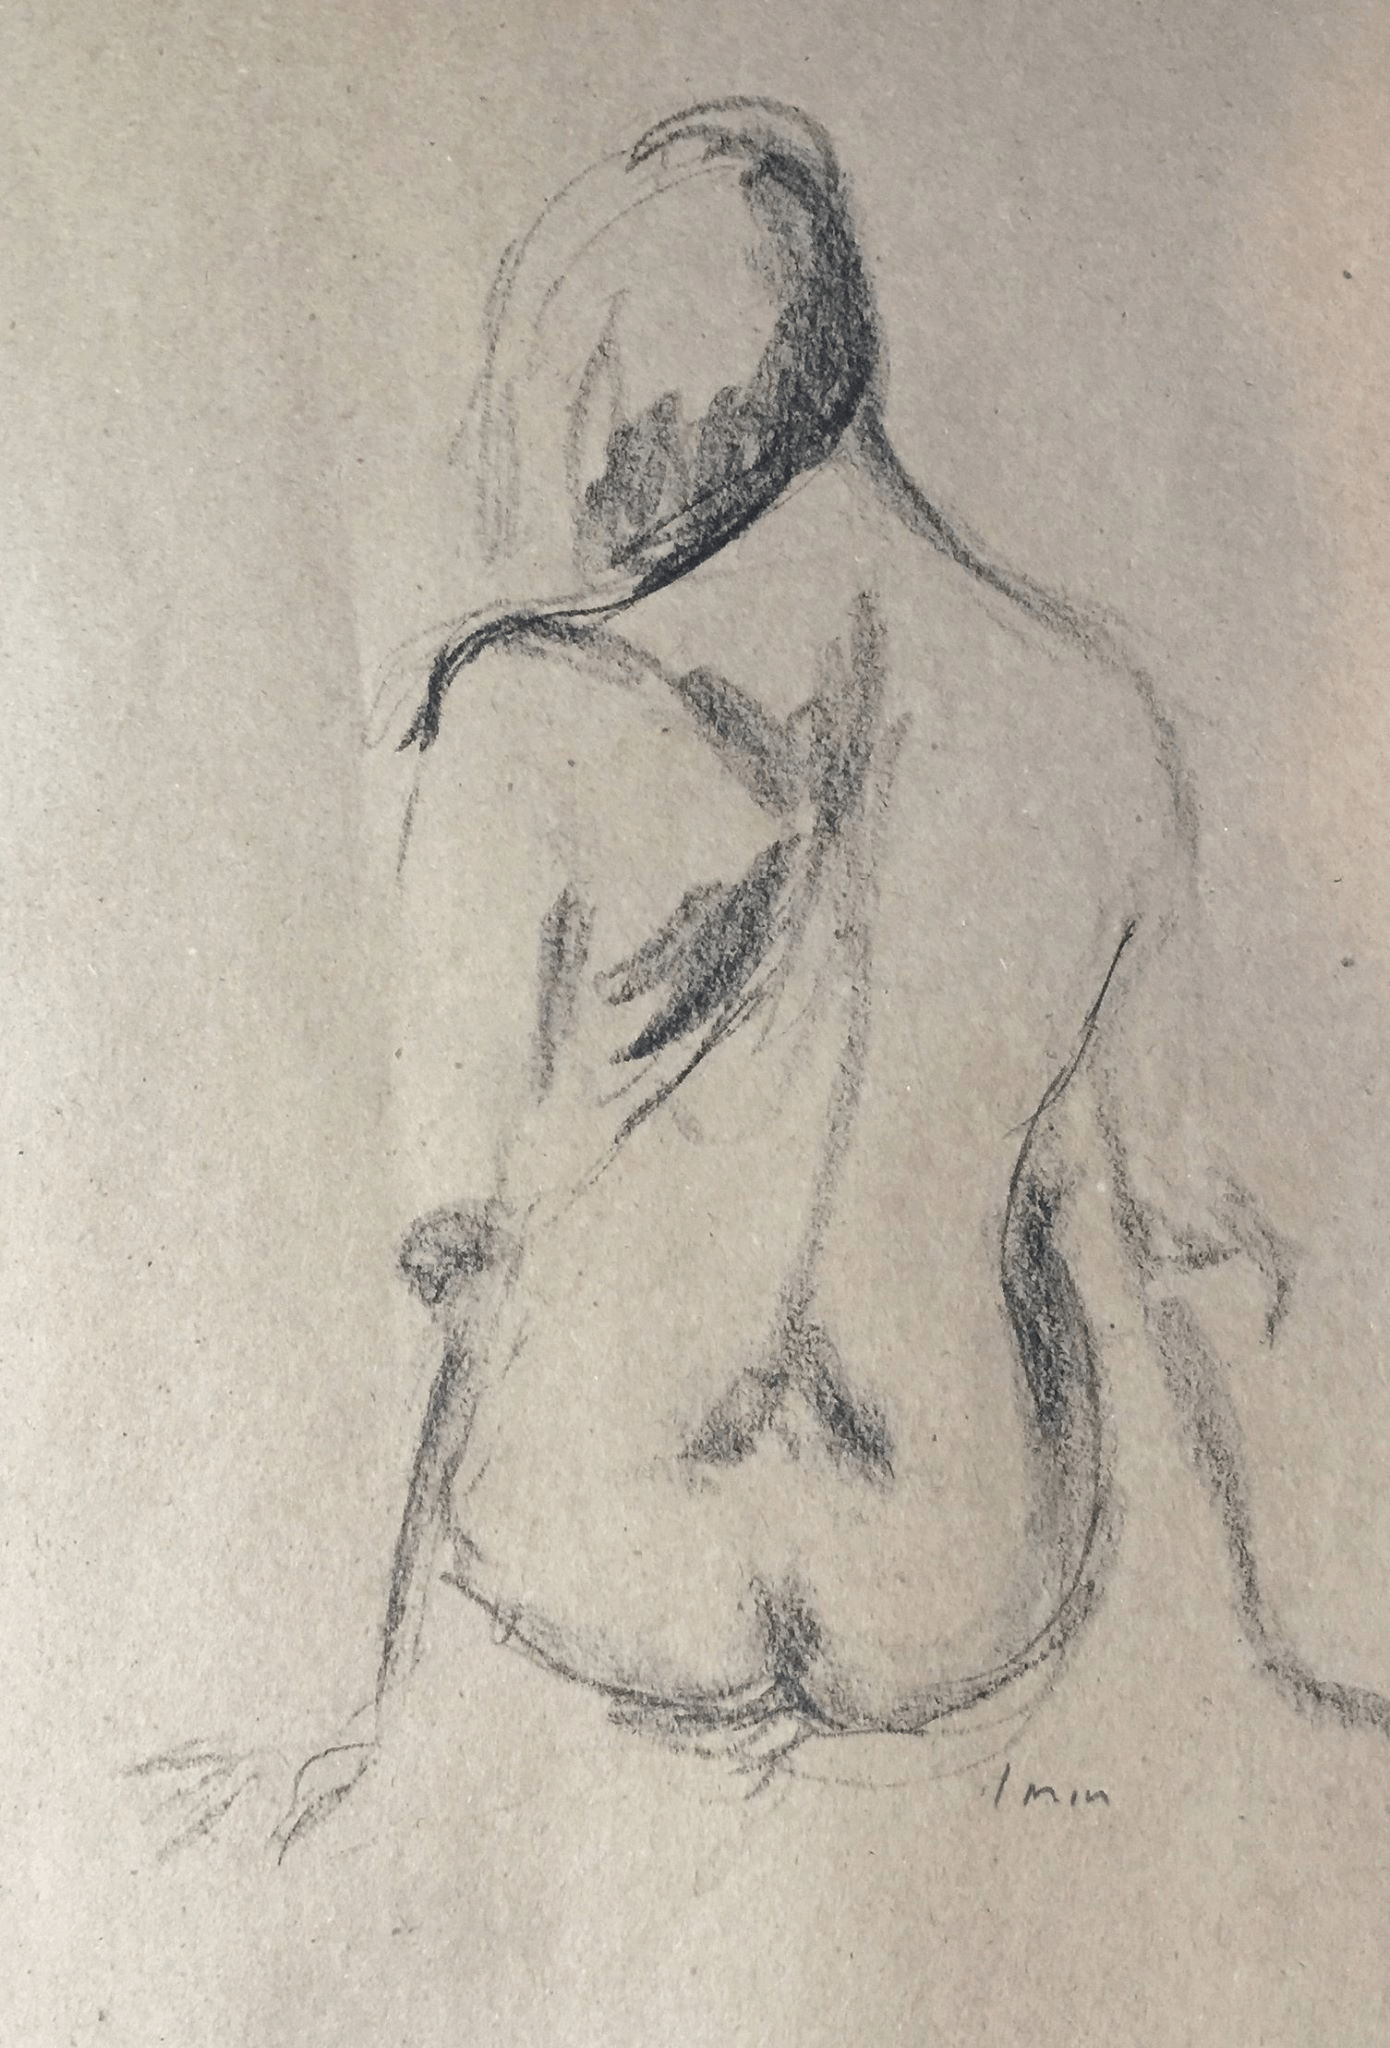 Pencil Sketch Classes Near Me